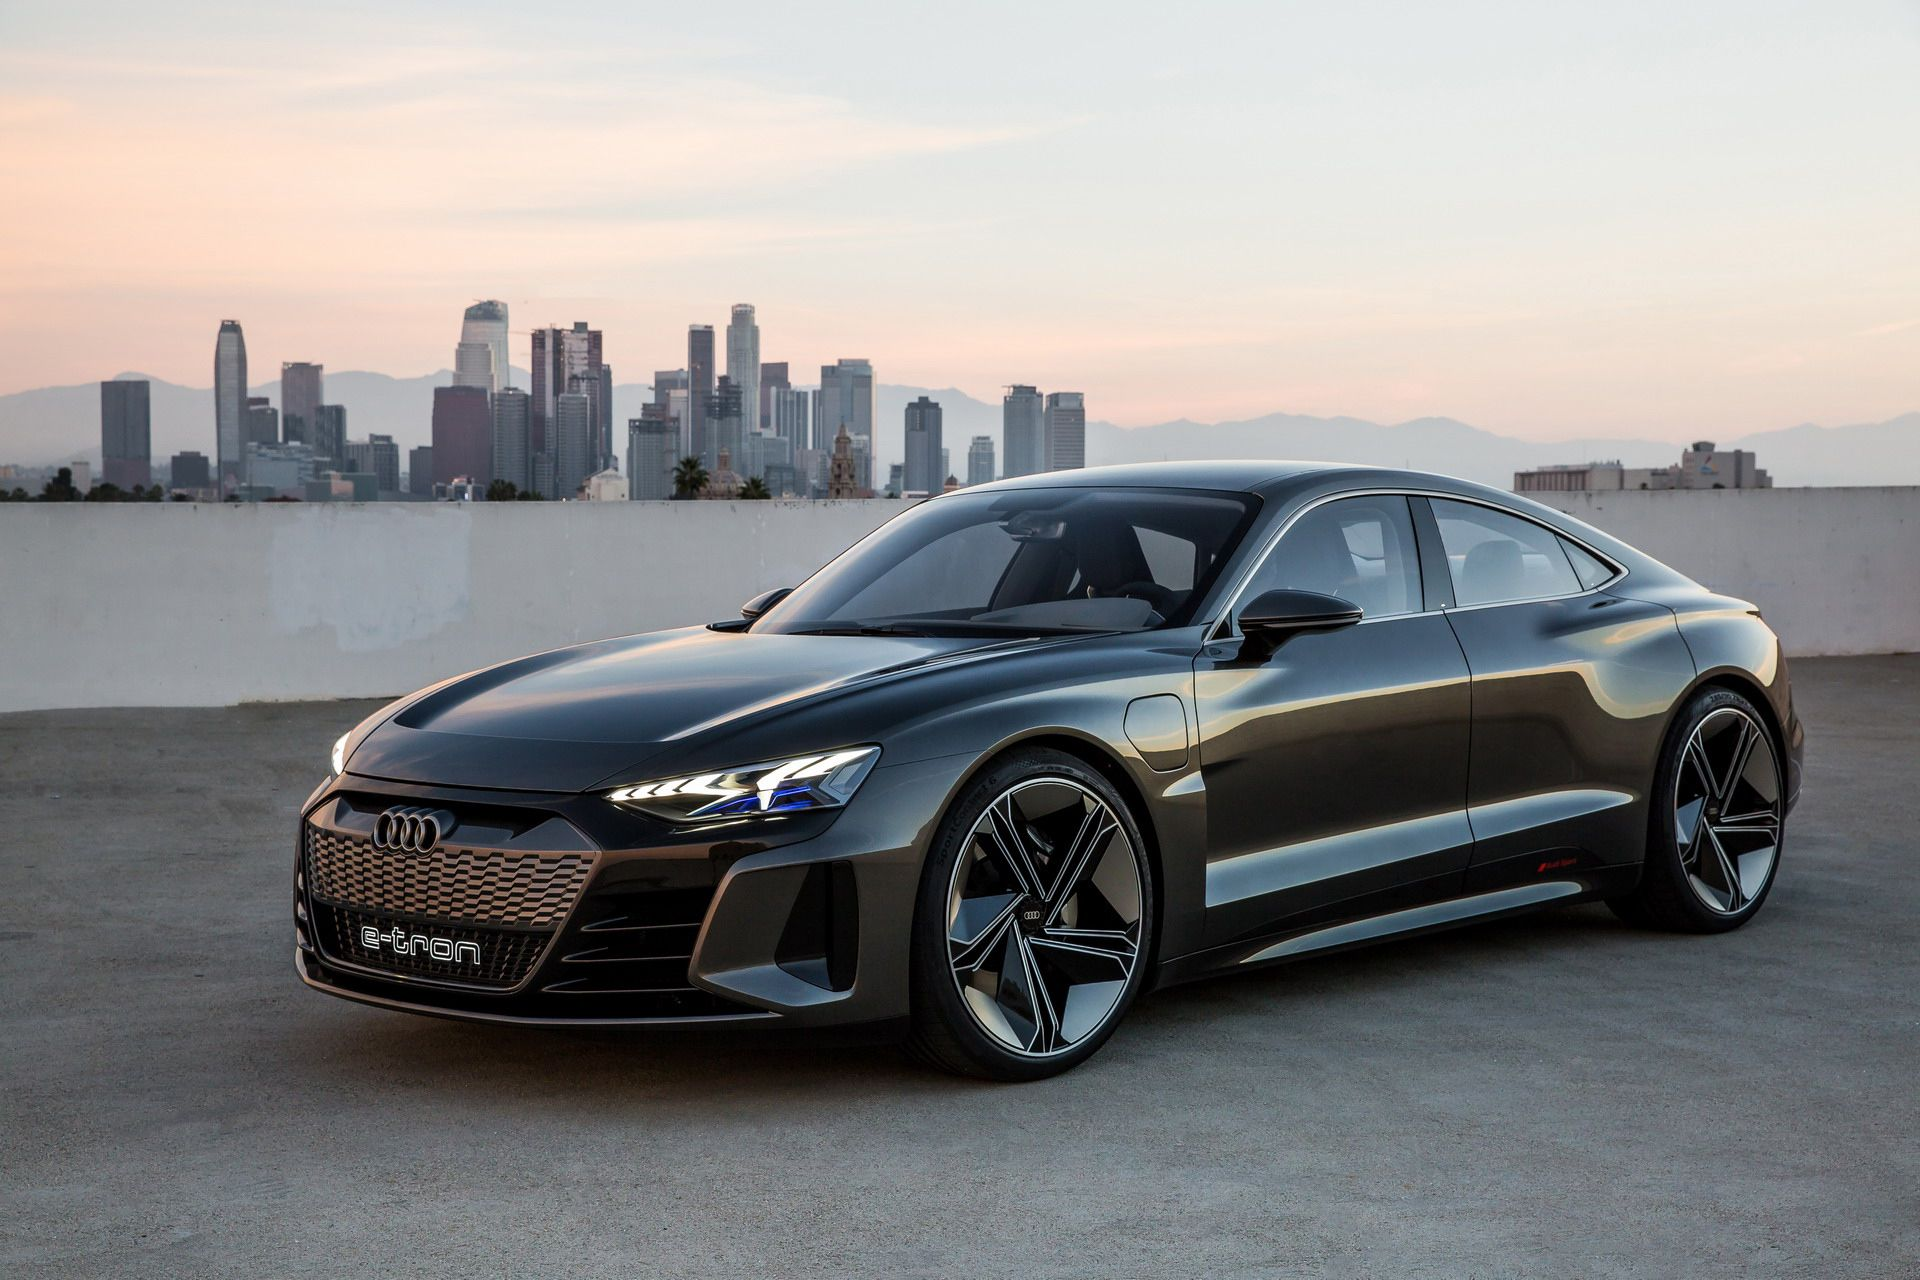 Audi New Models 2020 Rumors And Release Date Audi E Tron Audi Gt Audi Cars